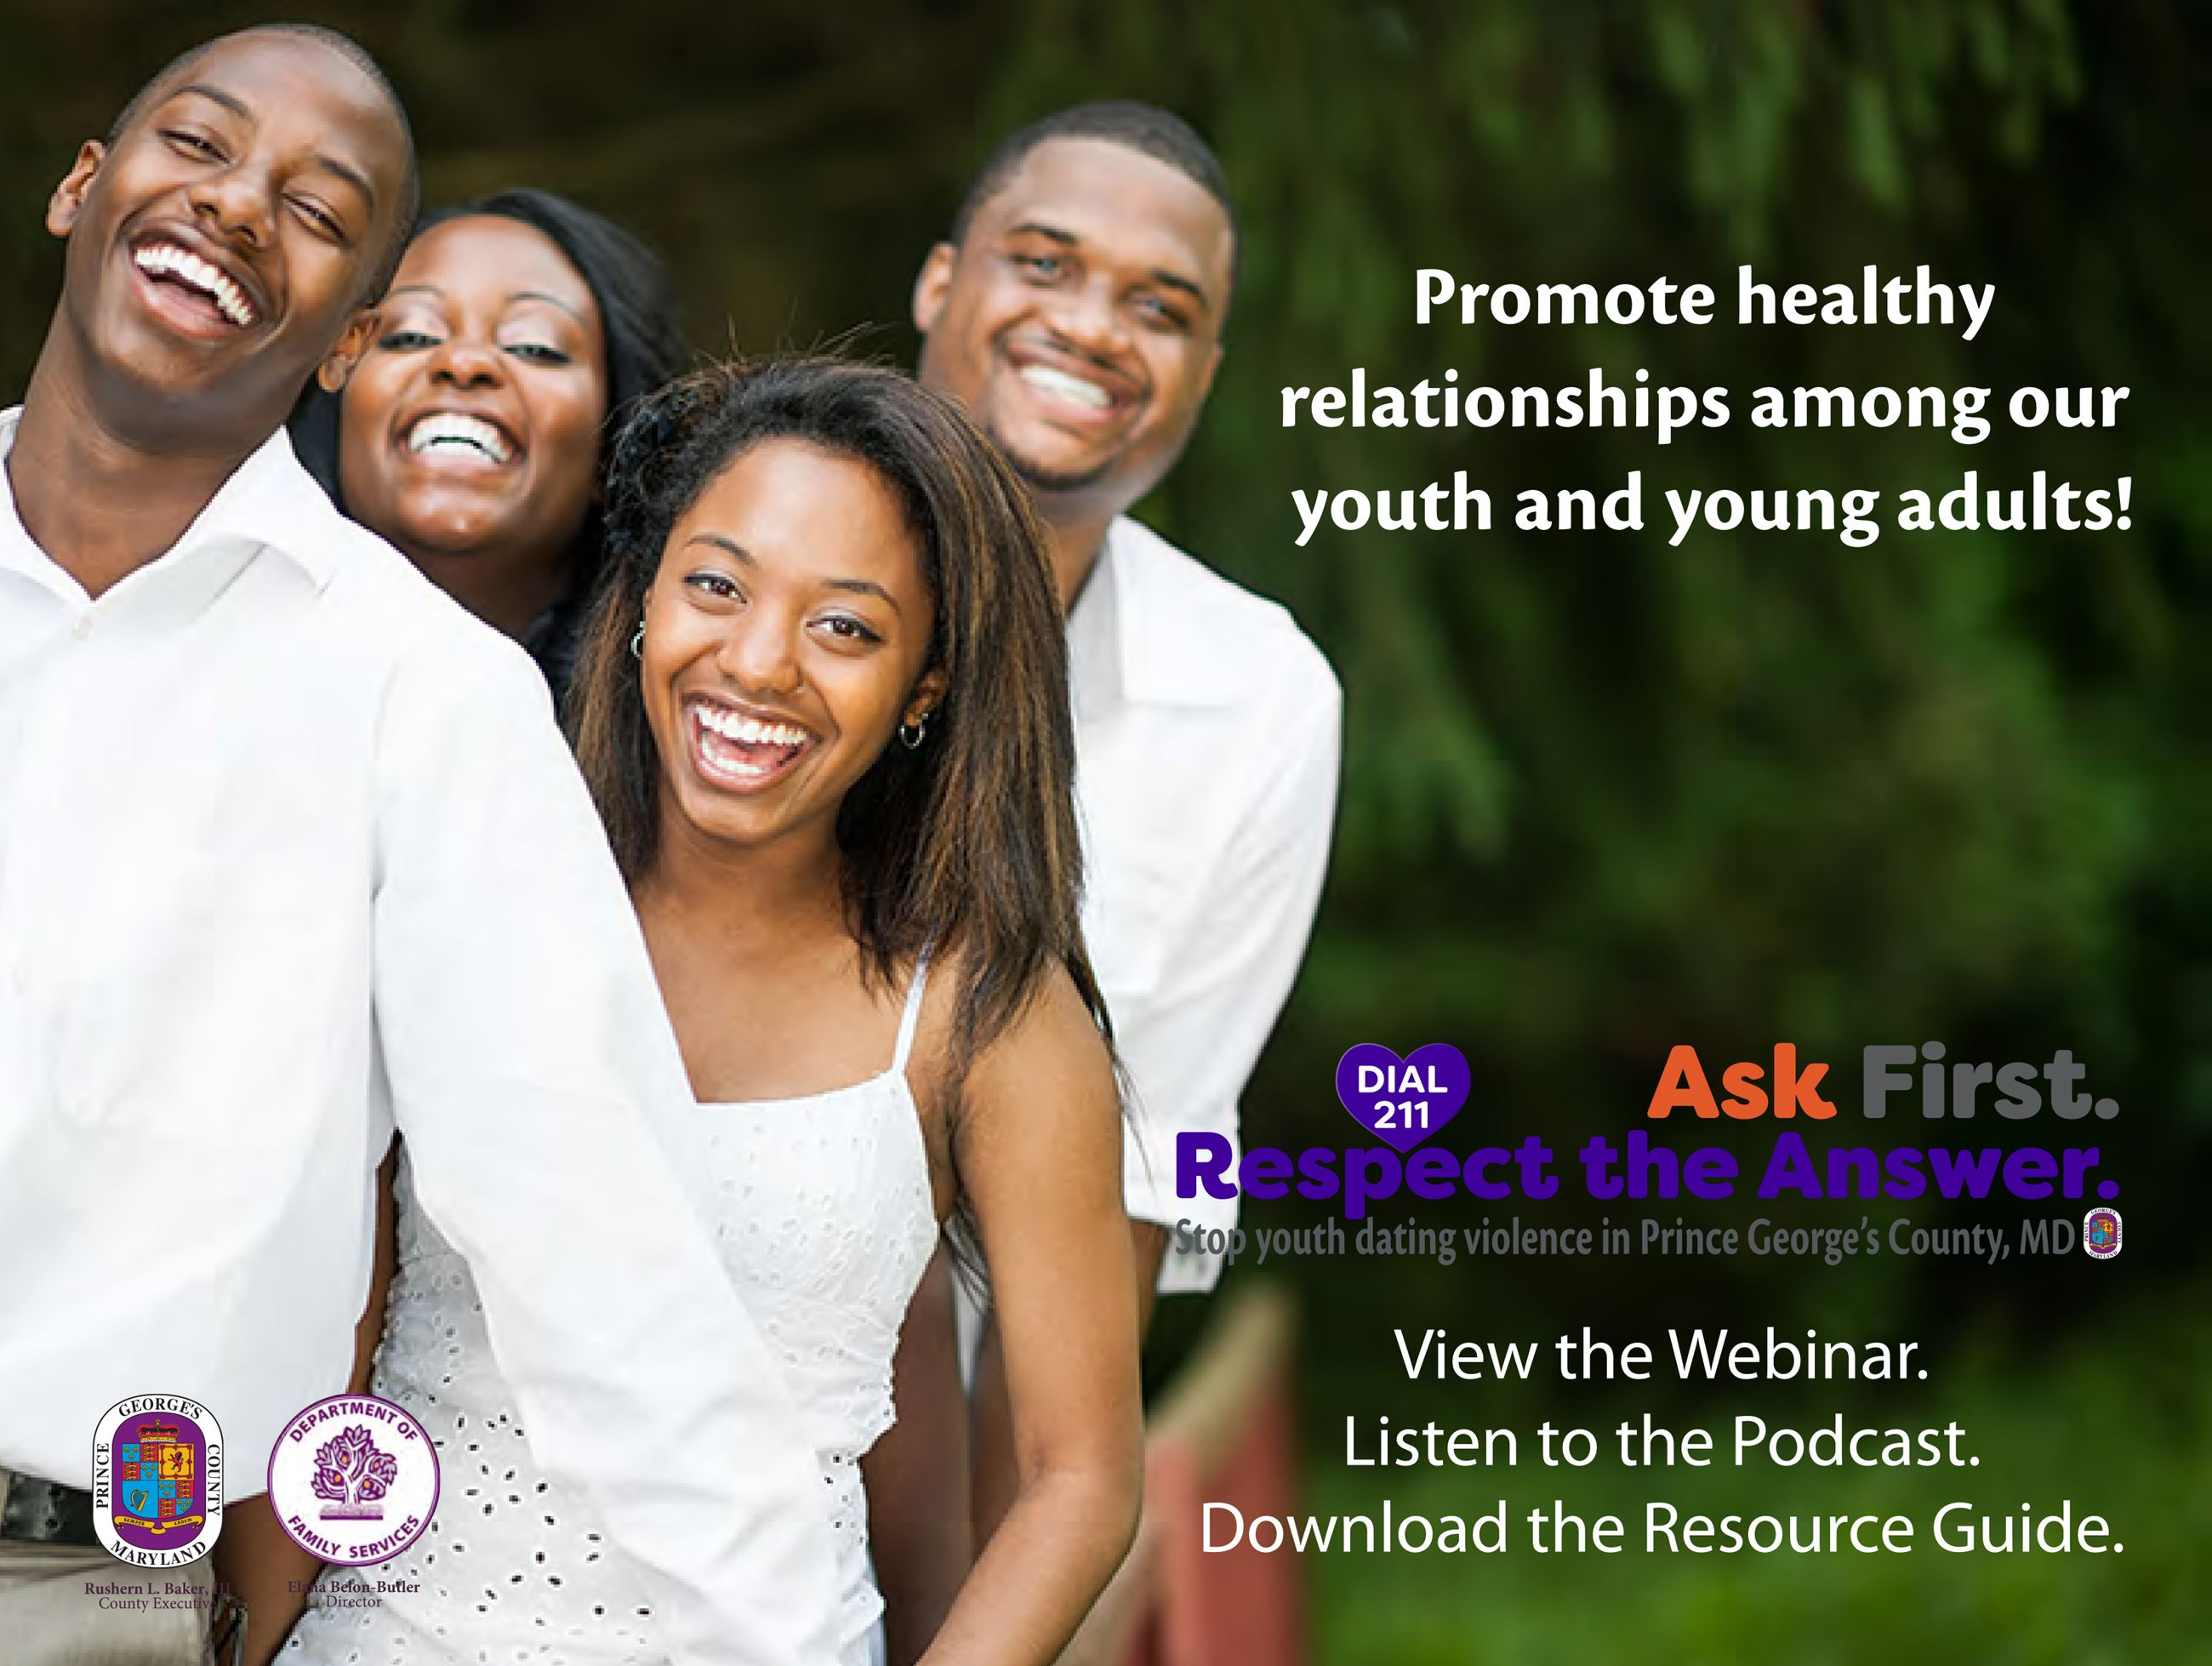 Promote Healthy Relationships